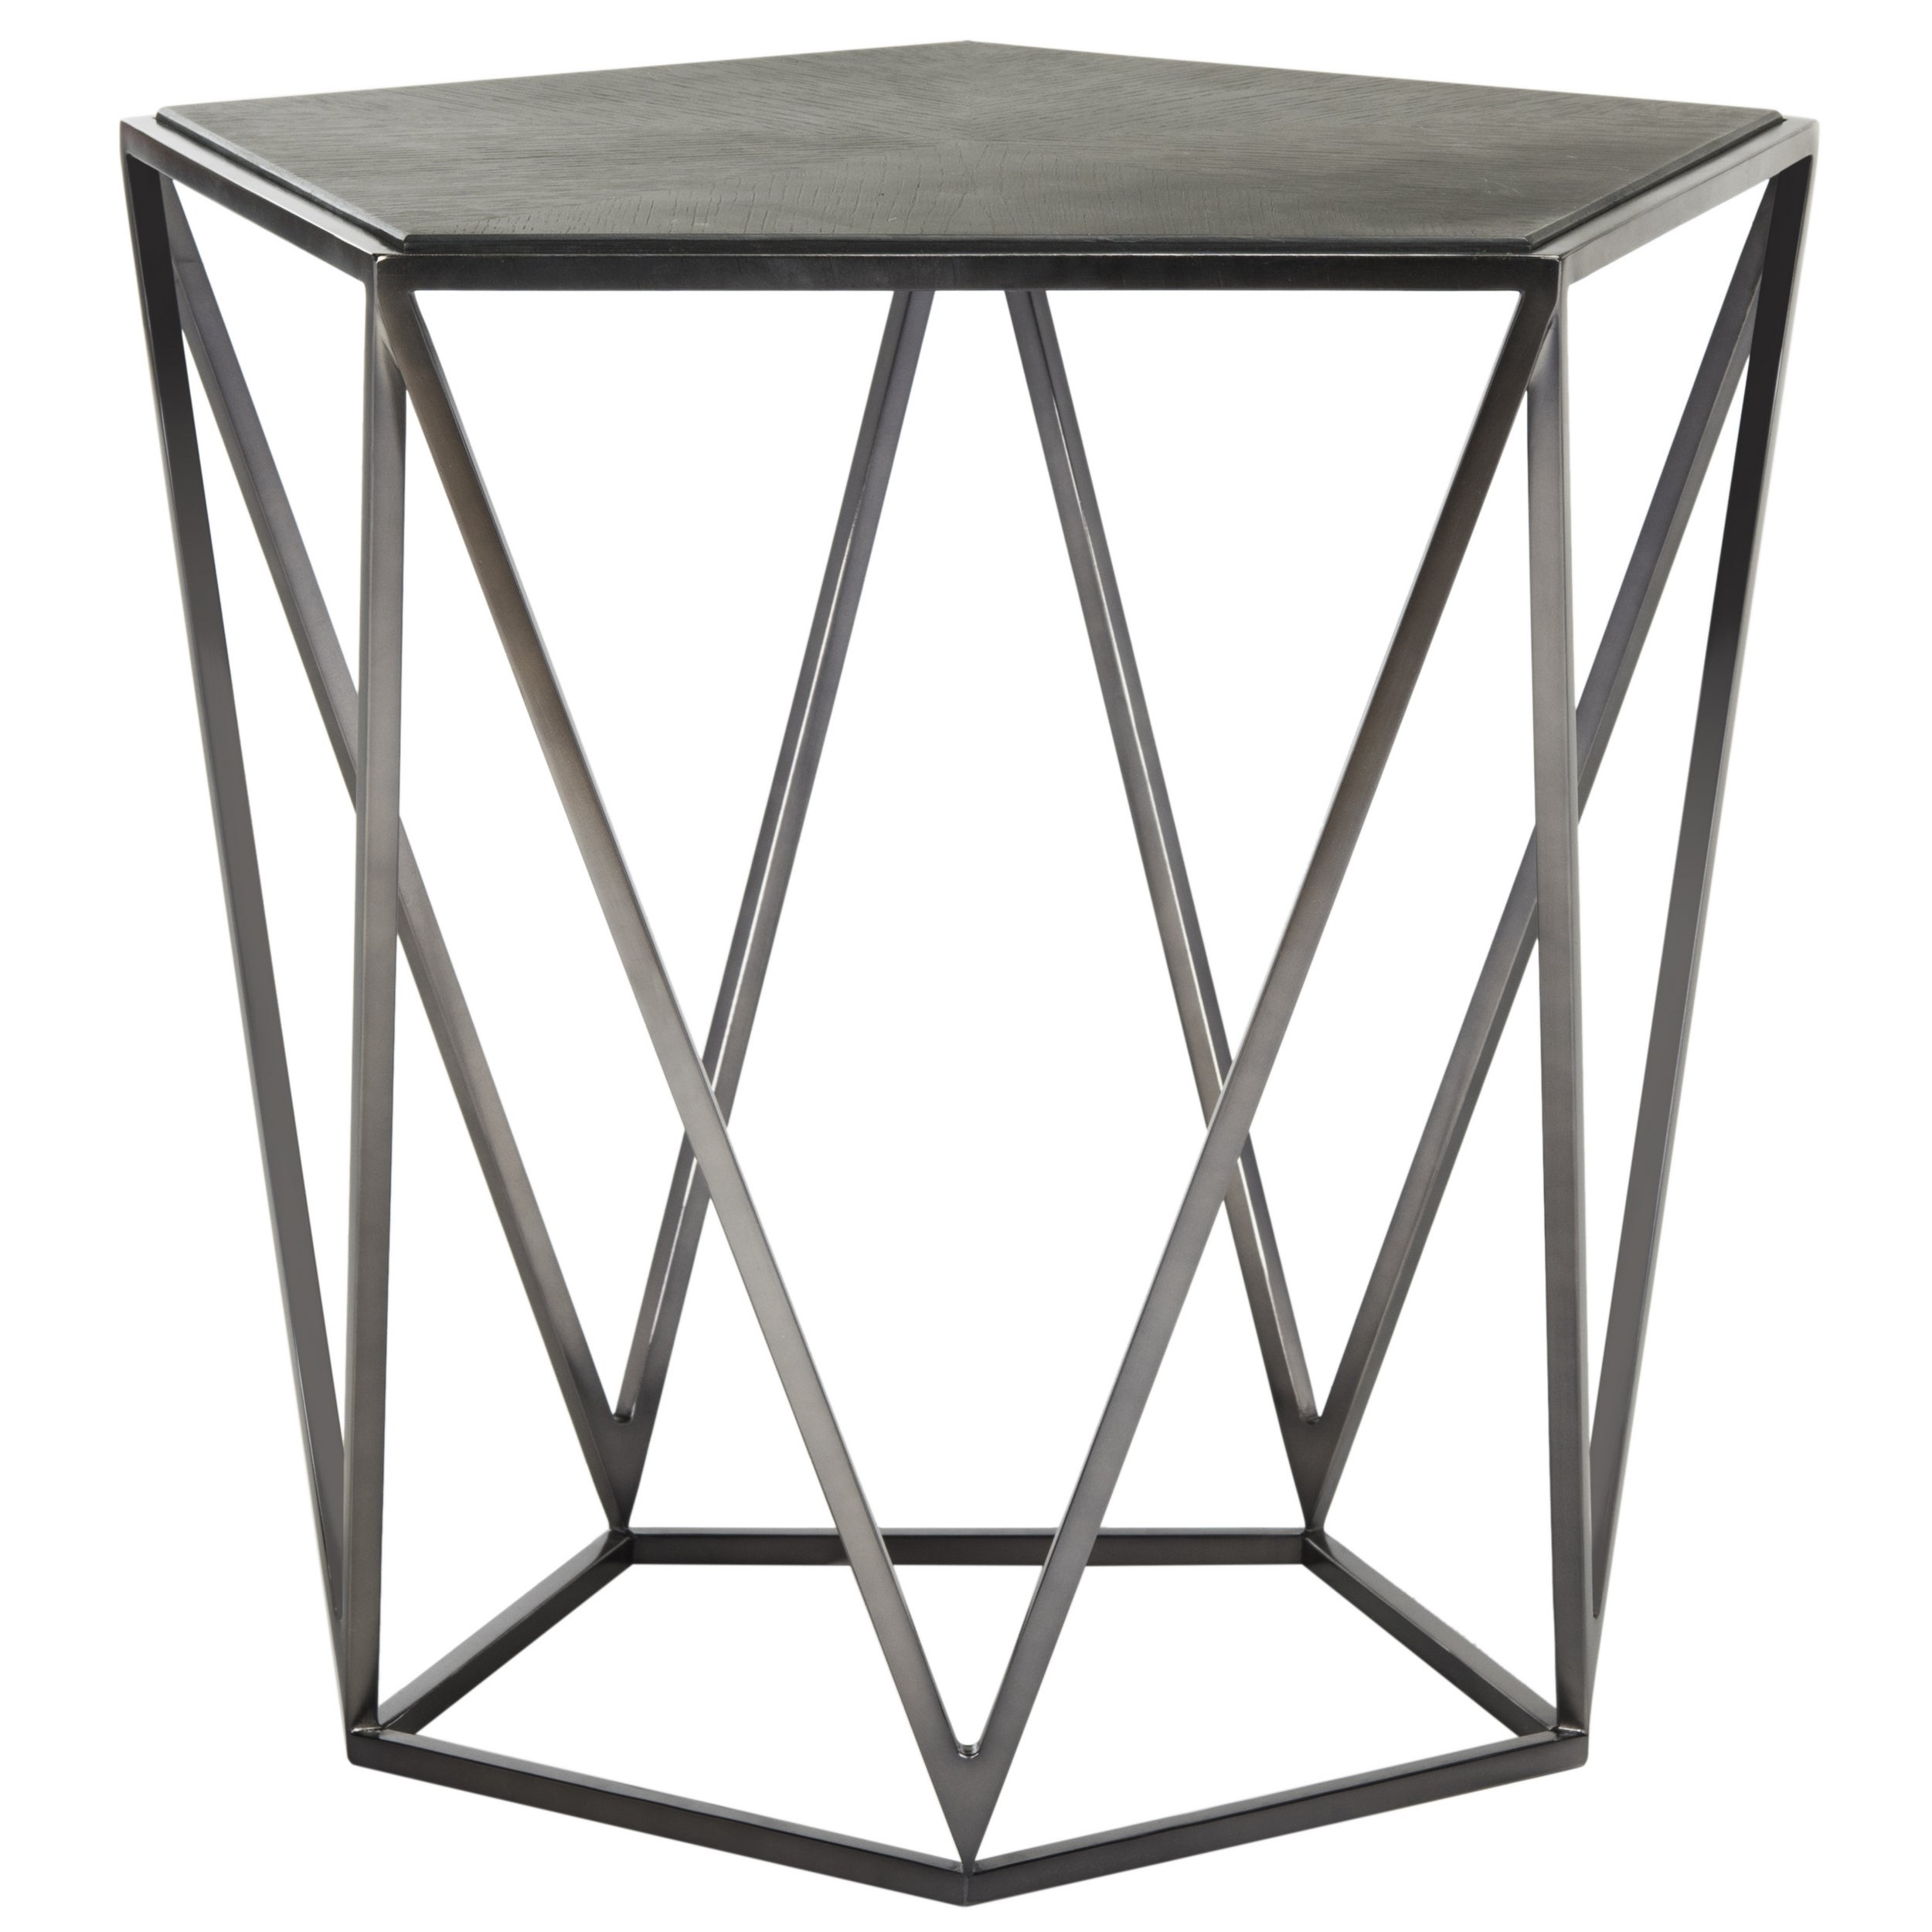 Safavieh Couture High Line Collection Alba Geometric Espresso Side Table Free Shipping Today 14143089